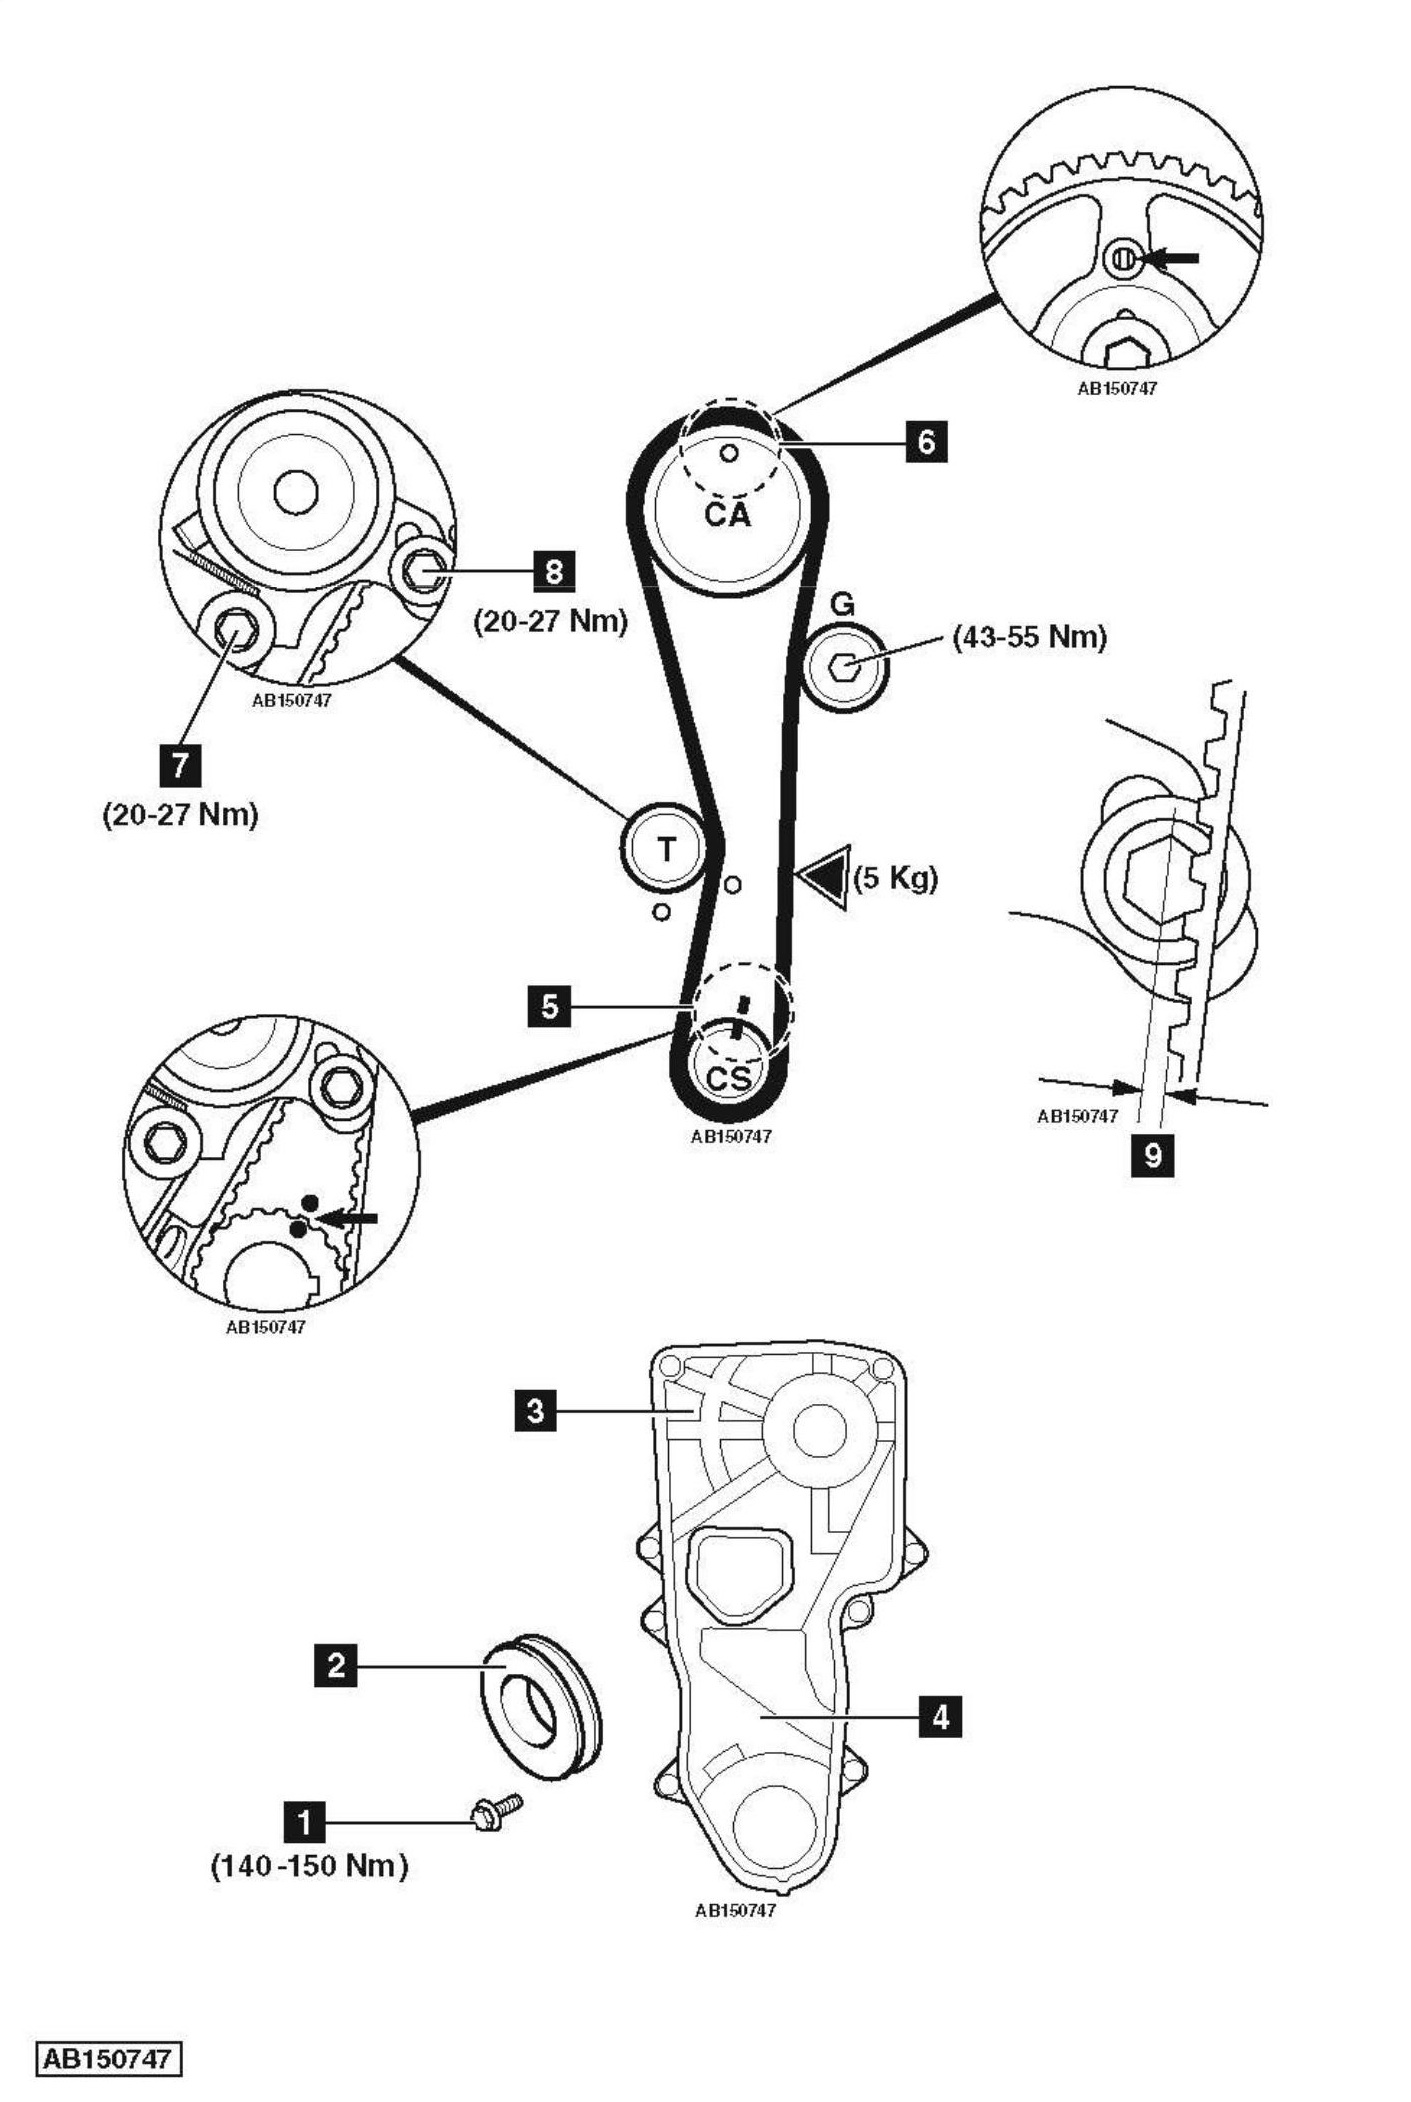 Cadena De Distribucion 25822 besides Gm Forklift Engines furthermore 2001 Volkswagen Jetta V6 2 8l Serpentine Belt Diagram also P 0900c152800849ff as well Chevrolet Silverado 1990 Chevy Silverado Serpentine Belt Diagram For The 1990 4. on chevy 4 3 timing marks